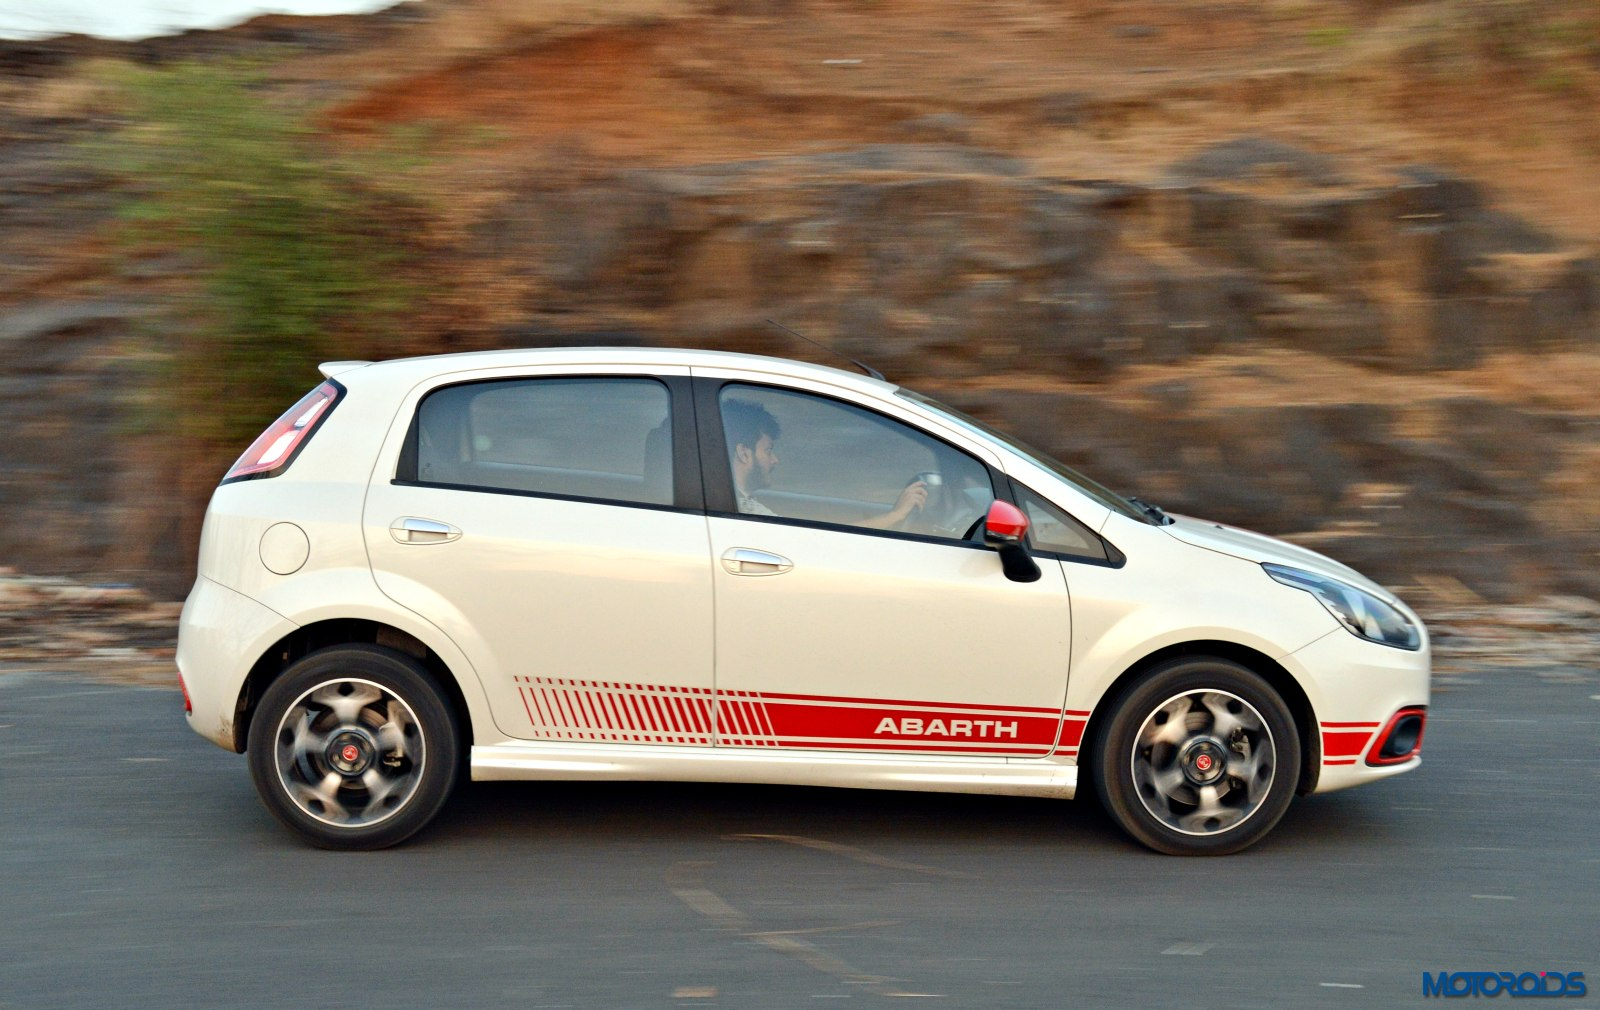 List: Top 5 affordable fun-to-drive cars in India | Motoroids